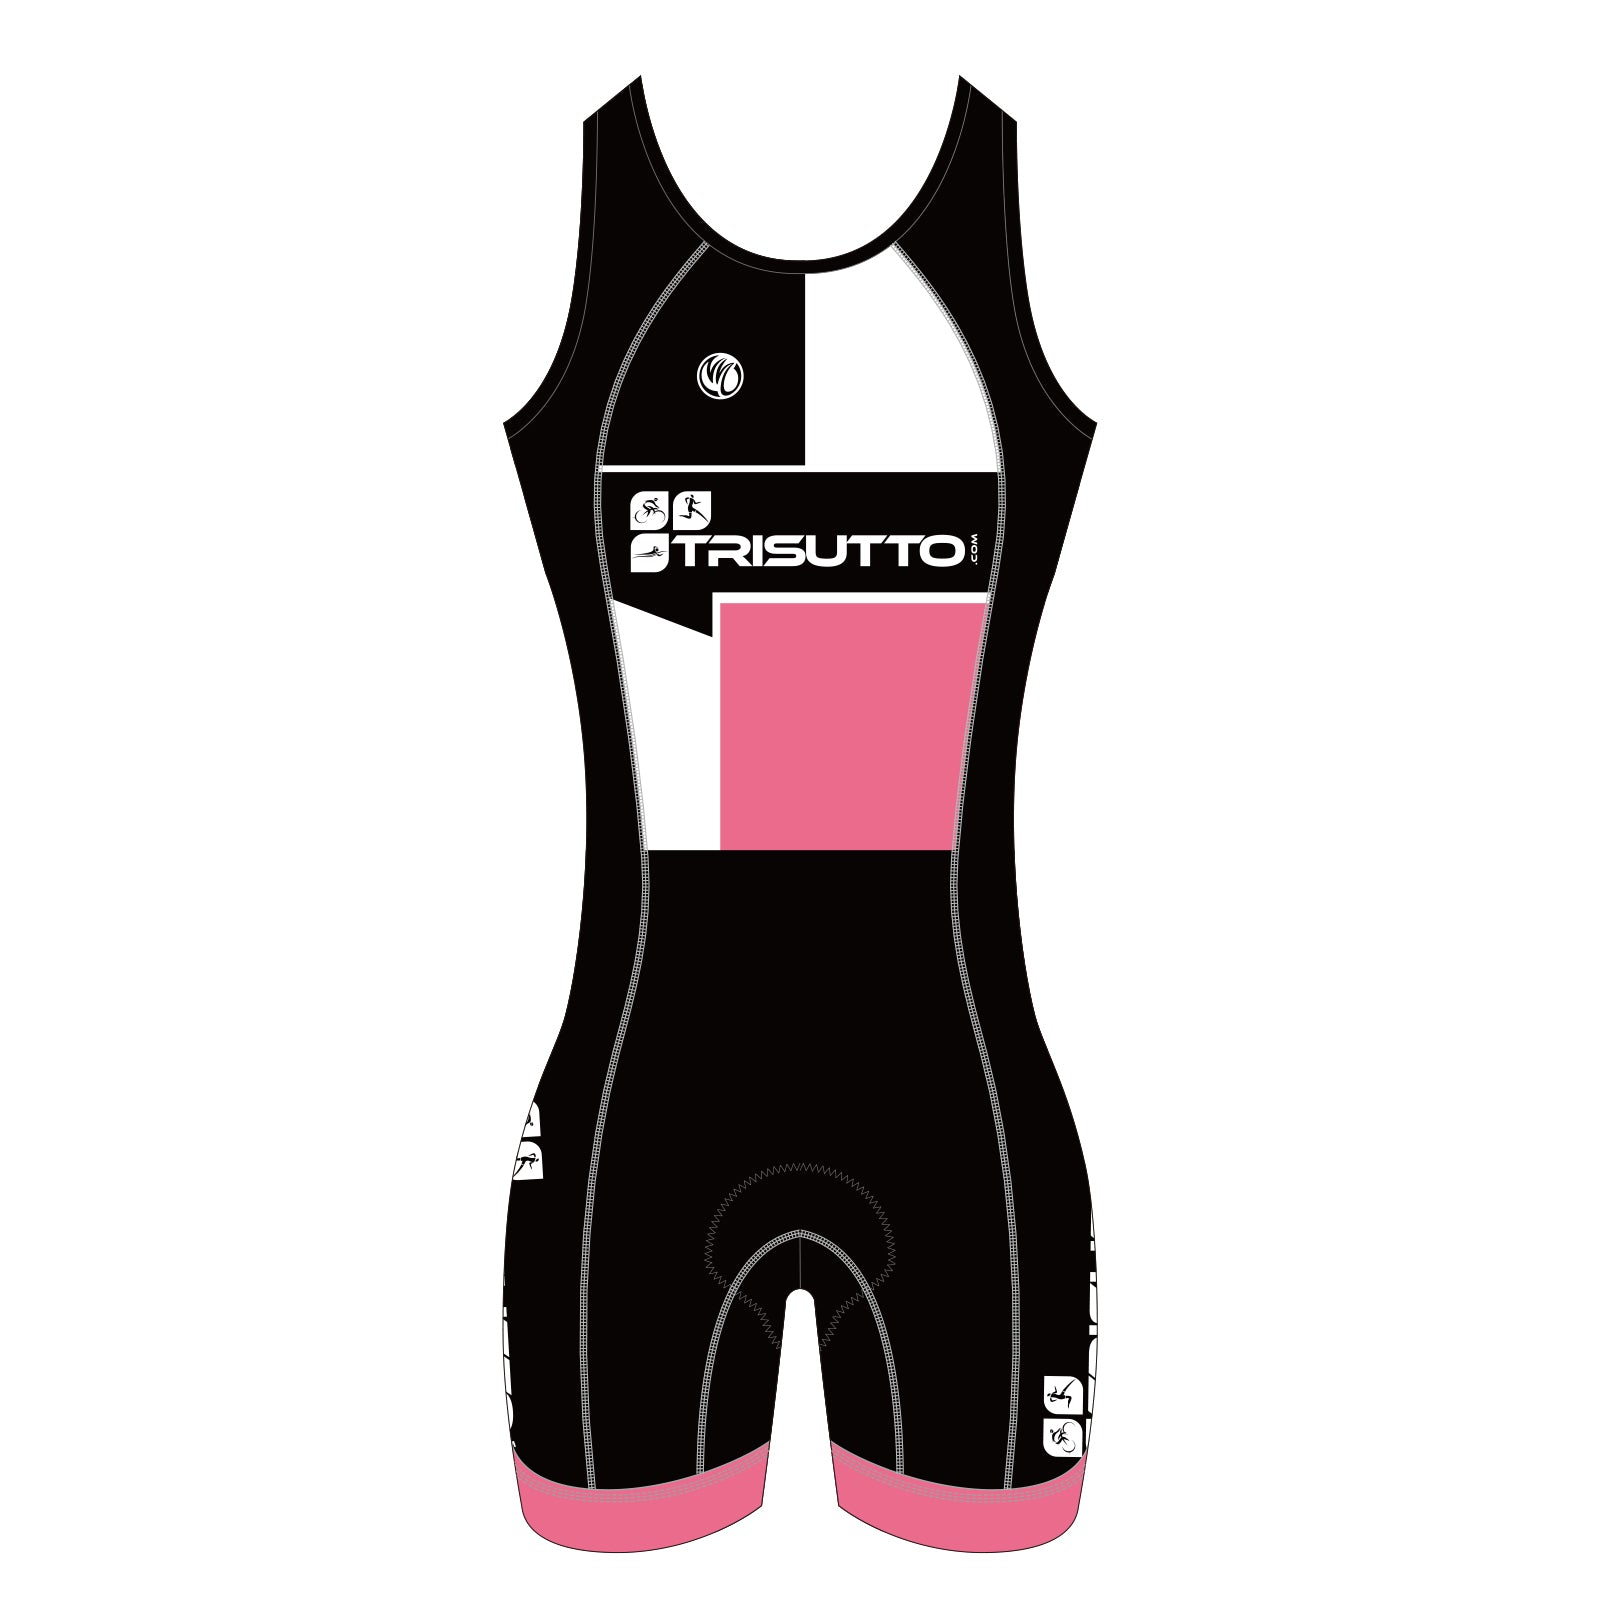 TRISUTTO Sleeveless Tri Suit